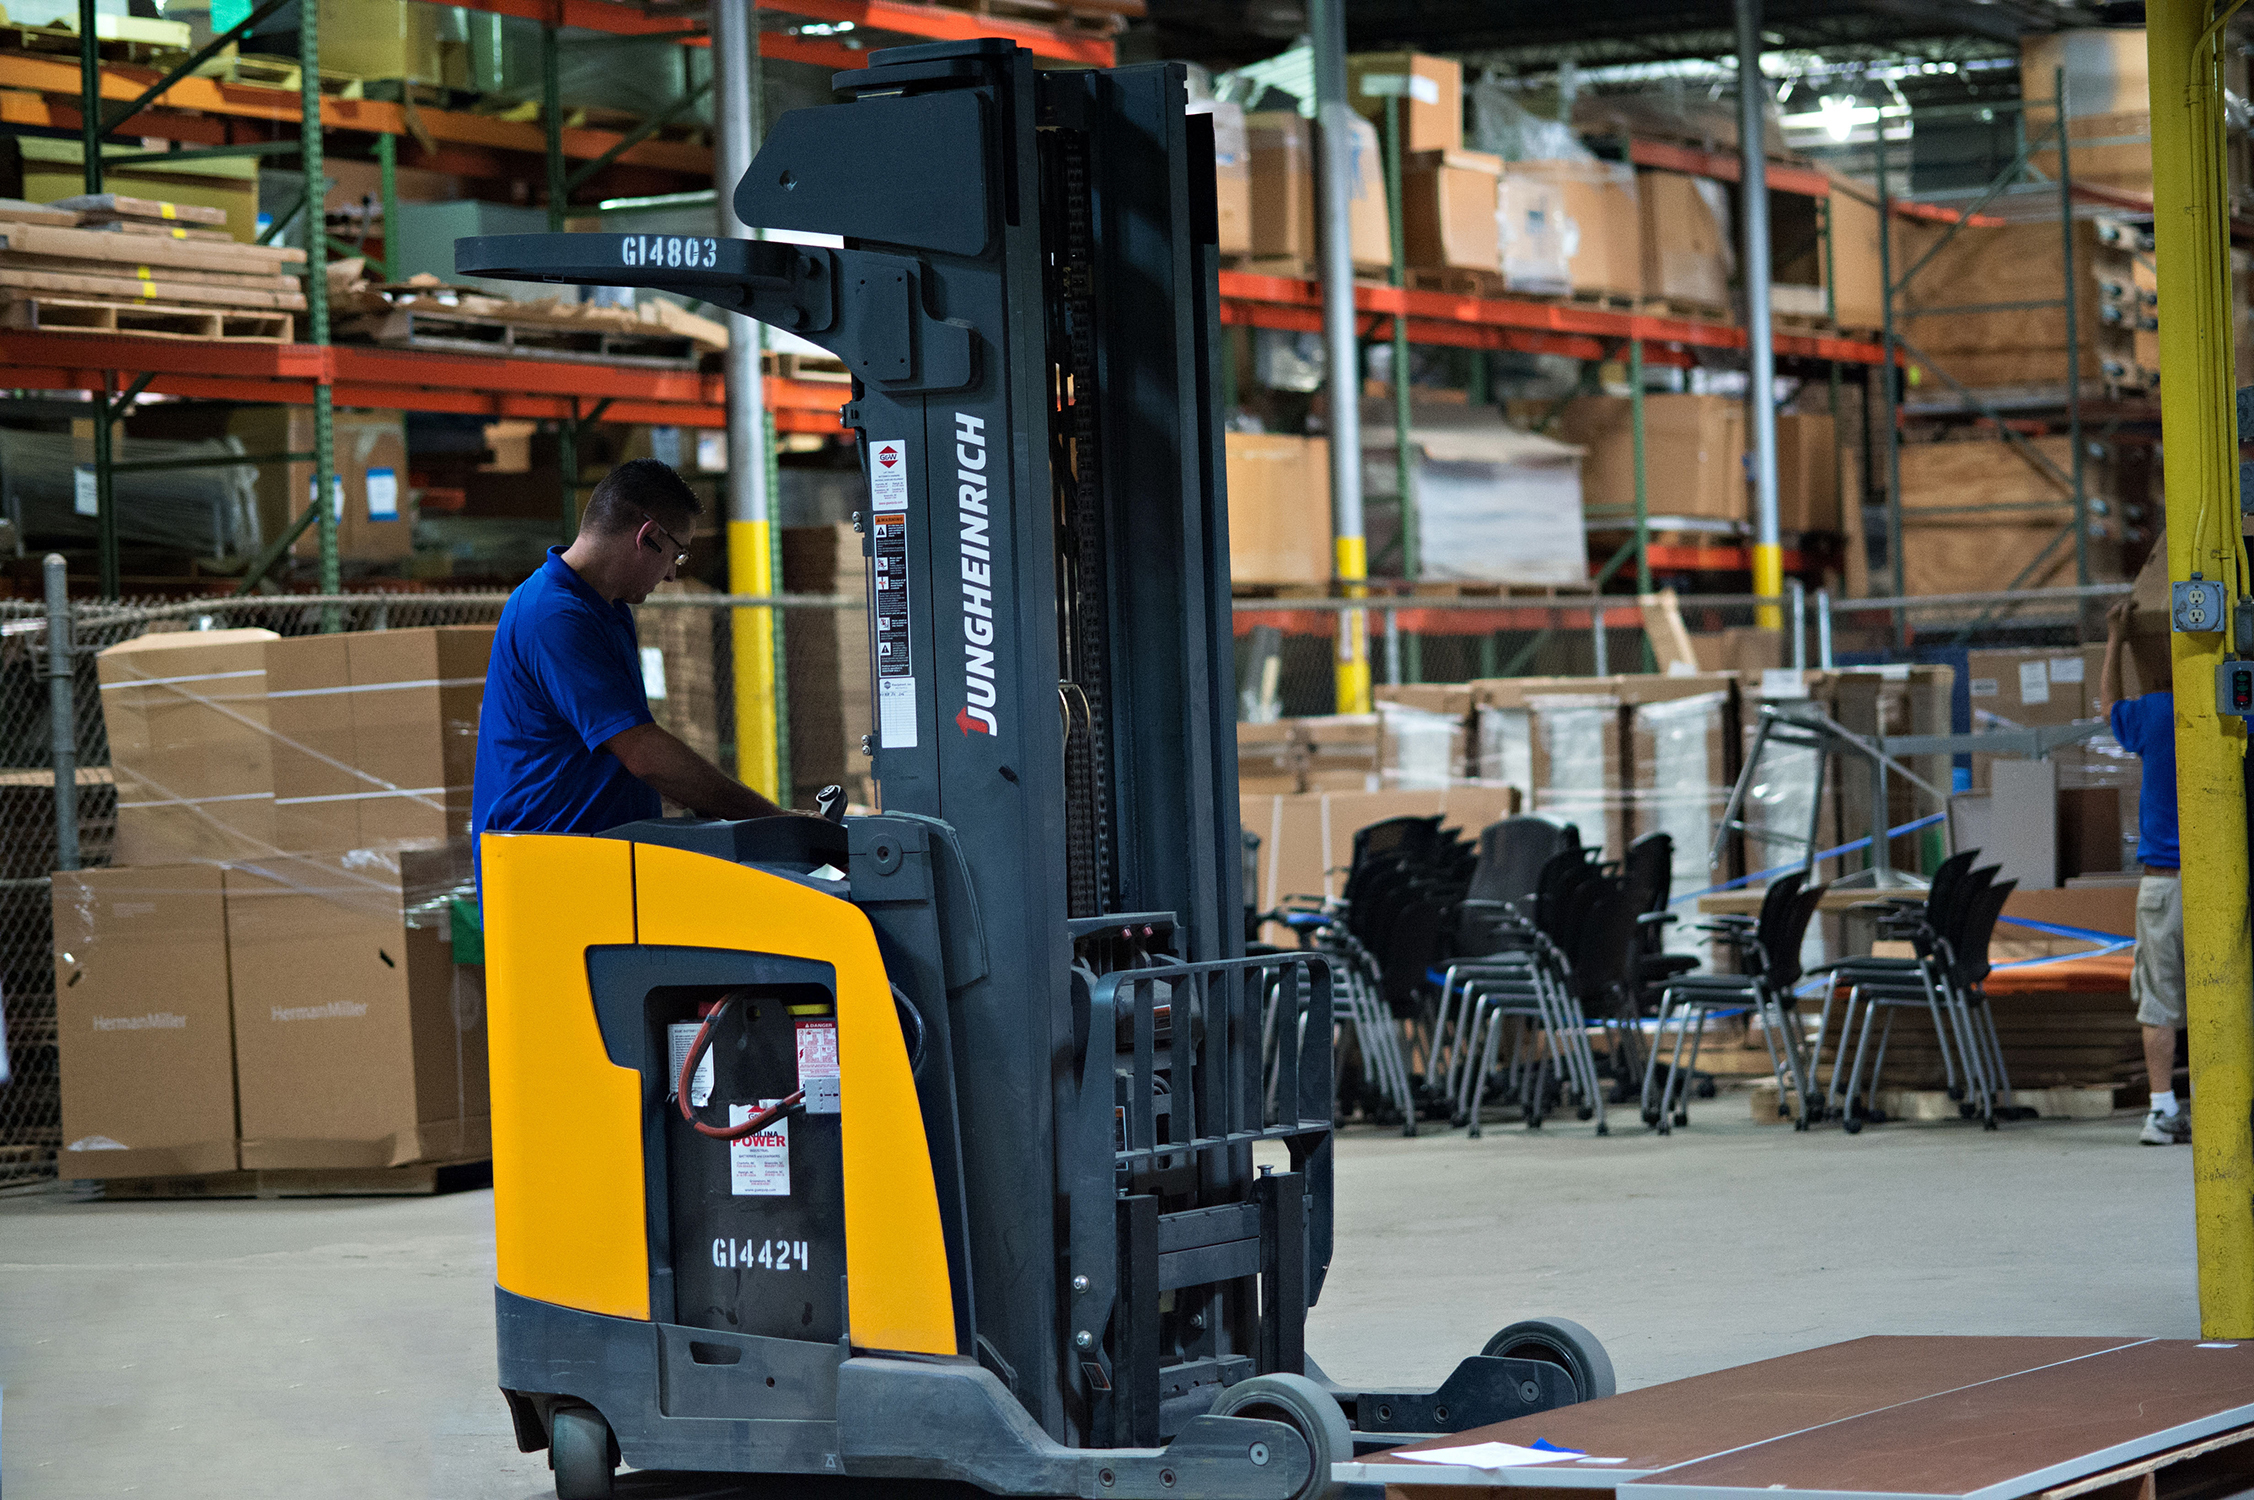 Warehousing and assetinventory management alfred williams company 1betcityfo Choice Image